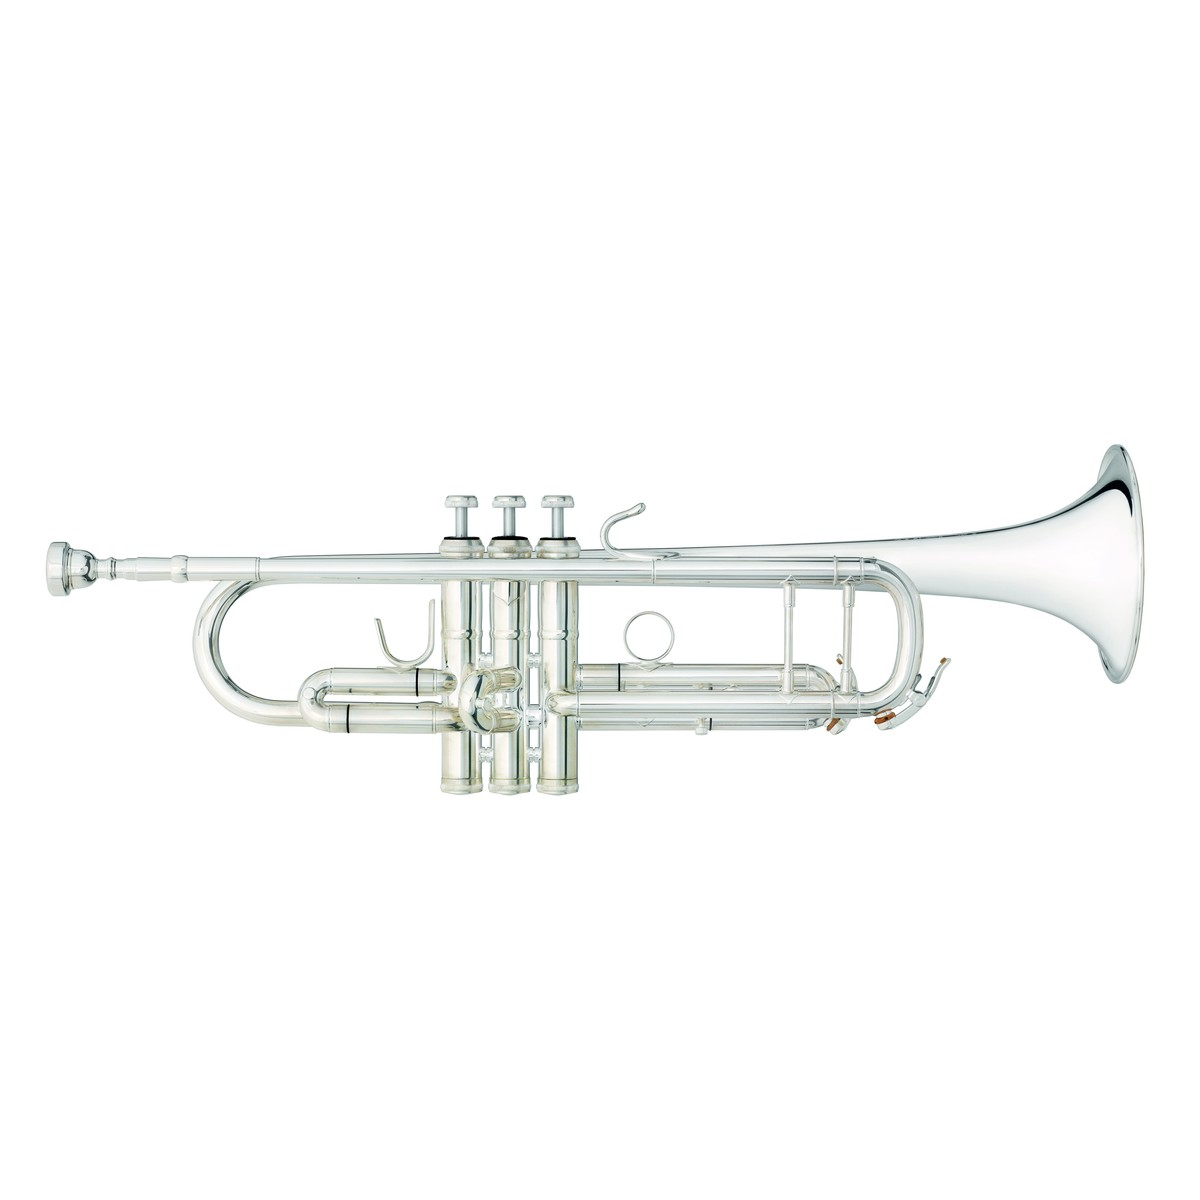 b u0026s challenger 2 trumpet  37 sterling silver bell and leadpipe at gear4music